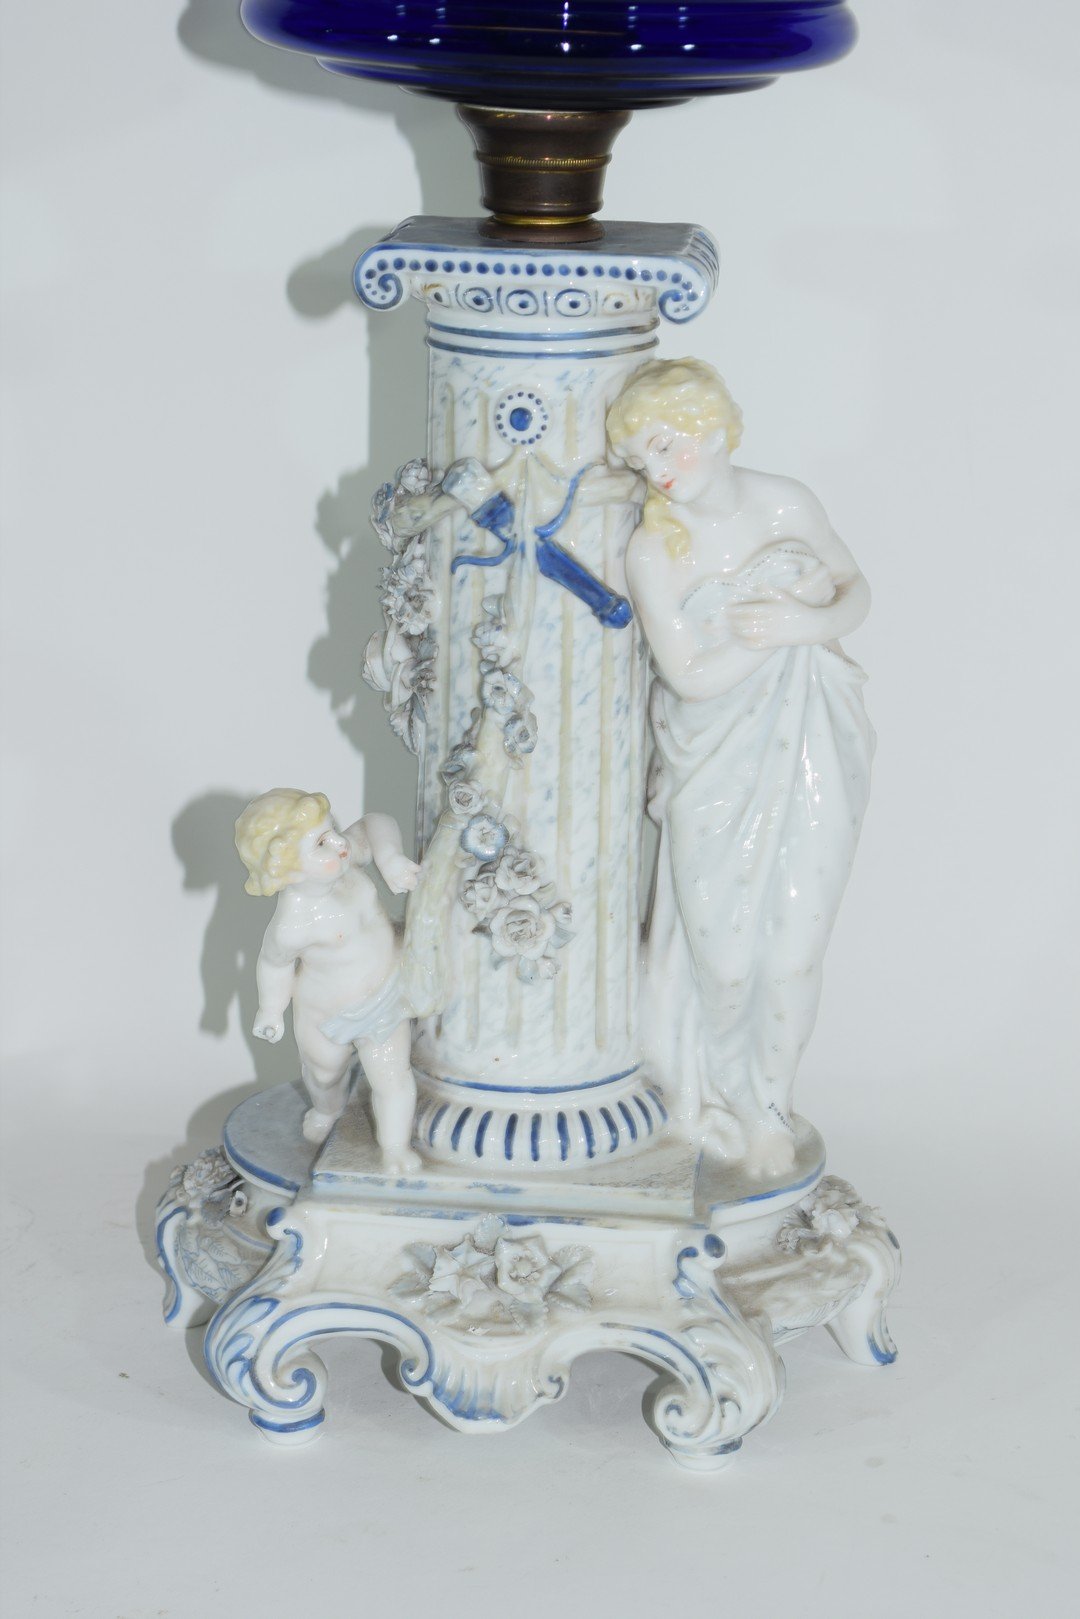 Oil lamp with blue glass reservoir - Image 2 of 6